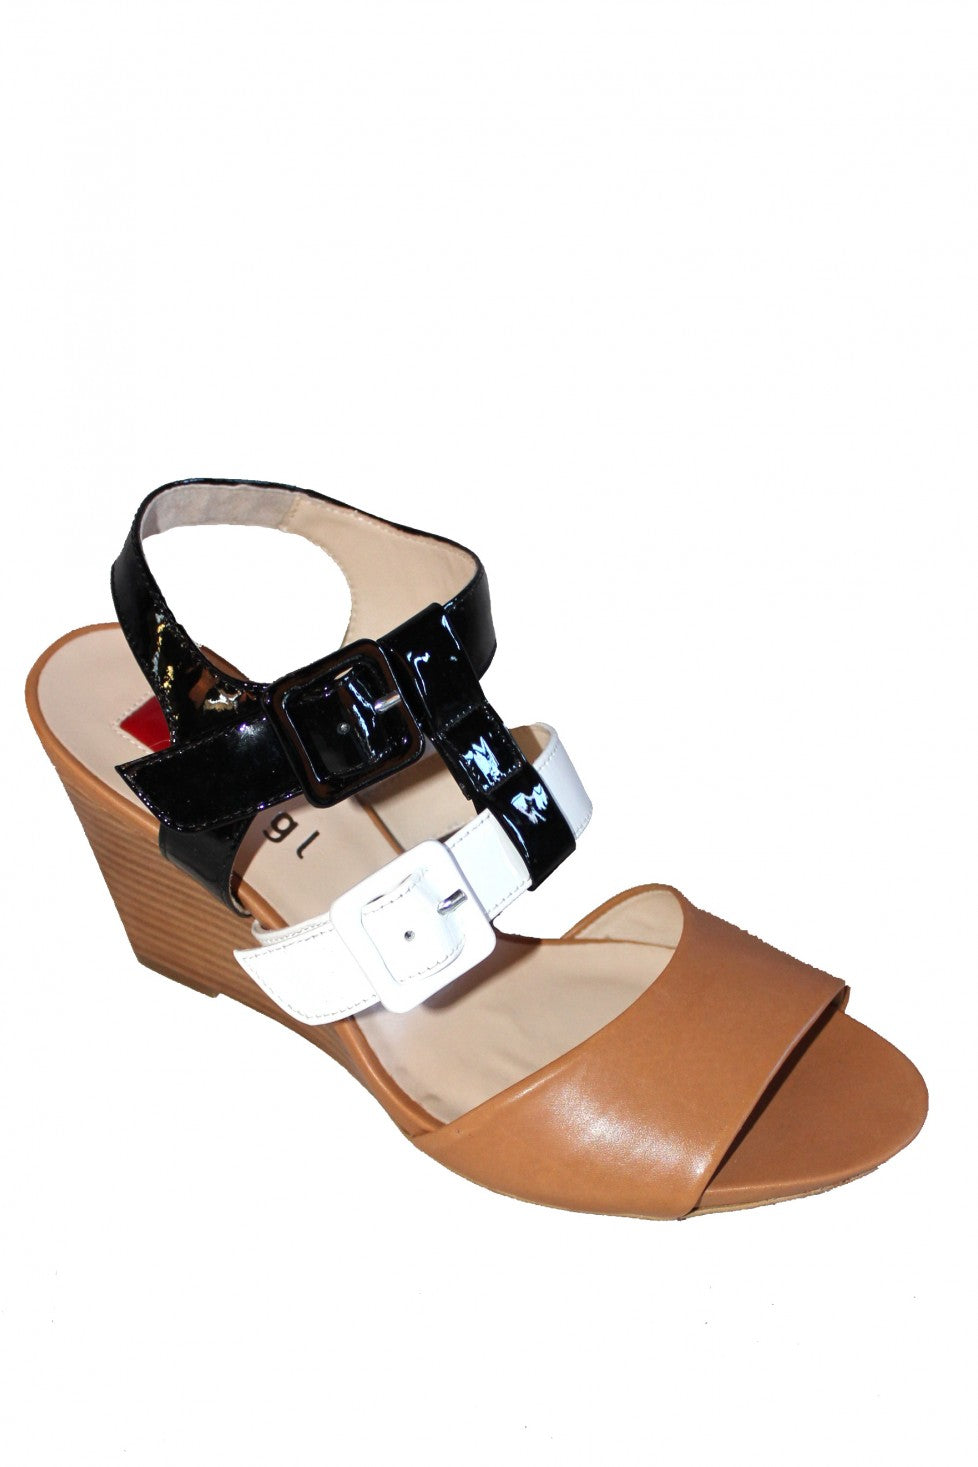 Multi Patent Leather Hogl Wedge Style and Grace